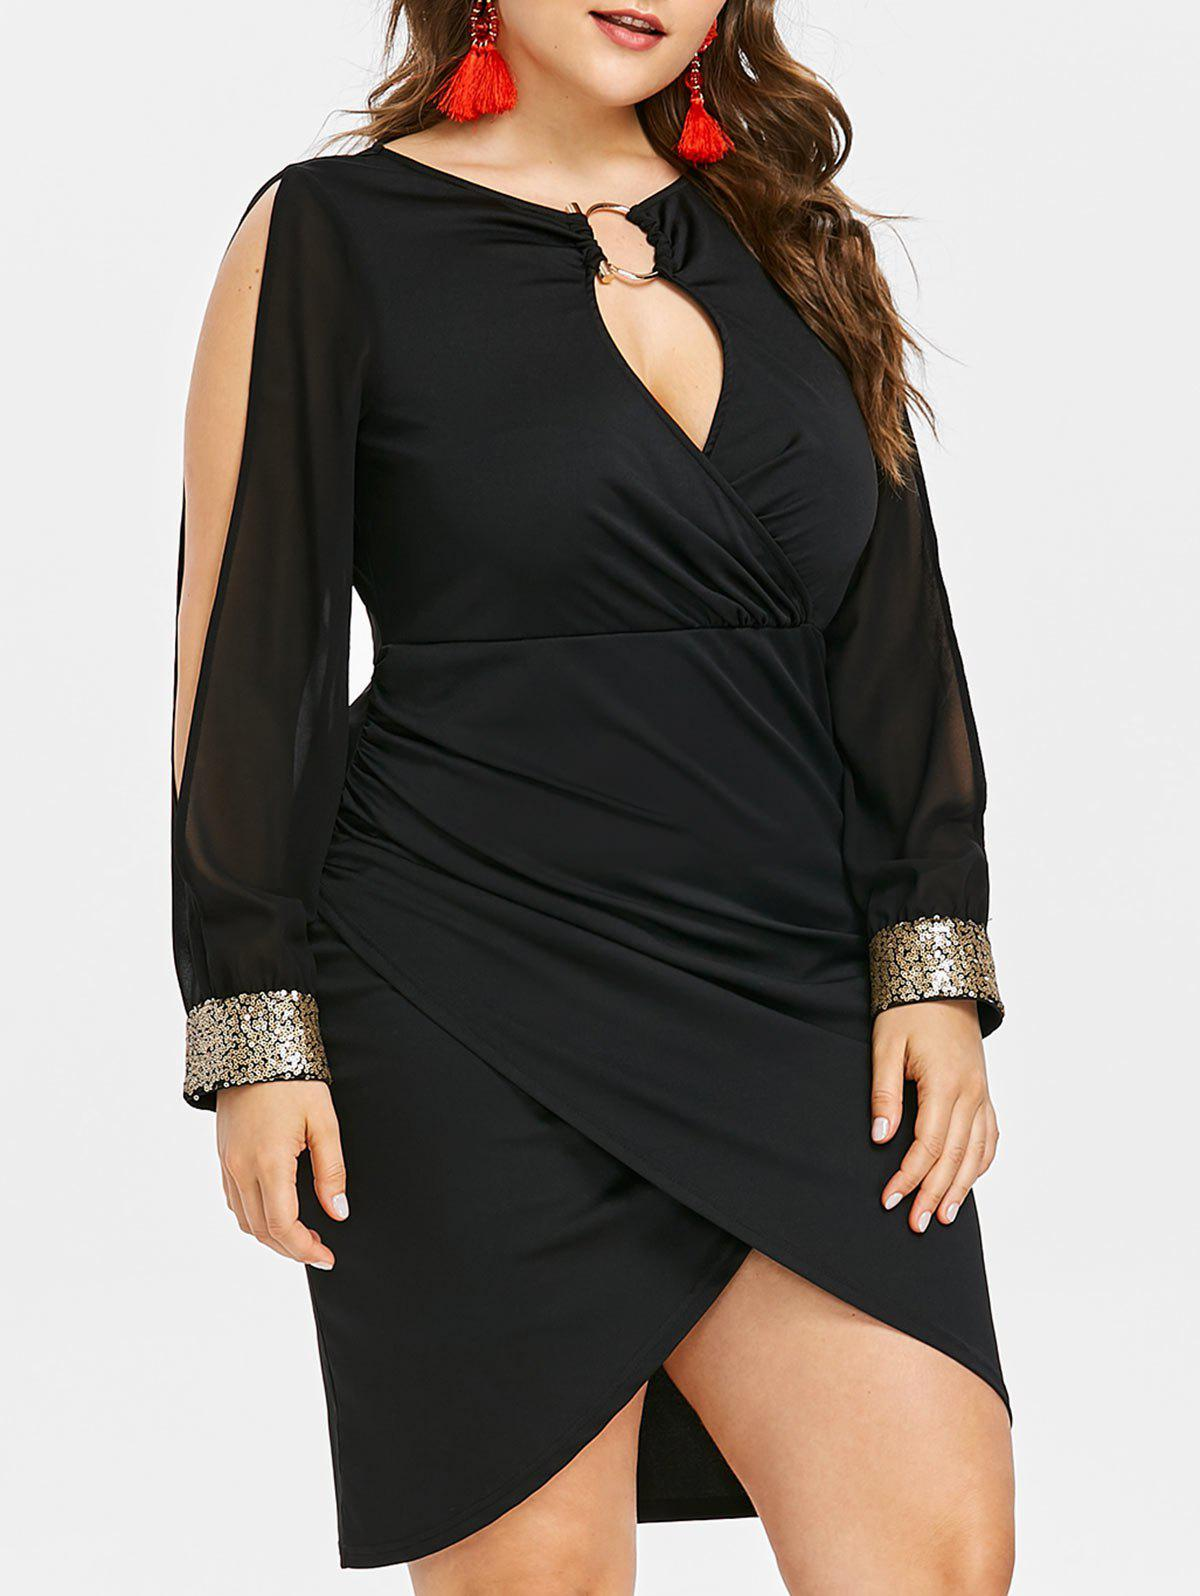 e2de7c0f95 47% OFF  Keyhole Neck Plus Size Slit Bodycon Dress